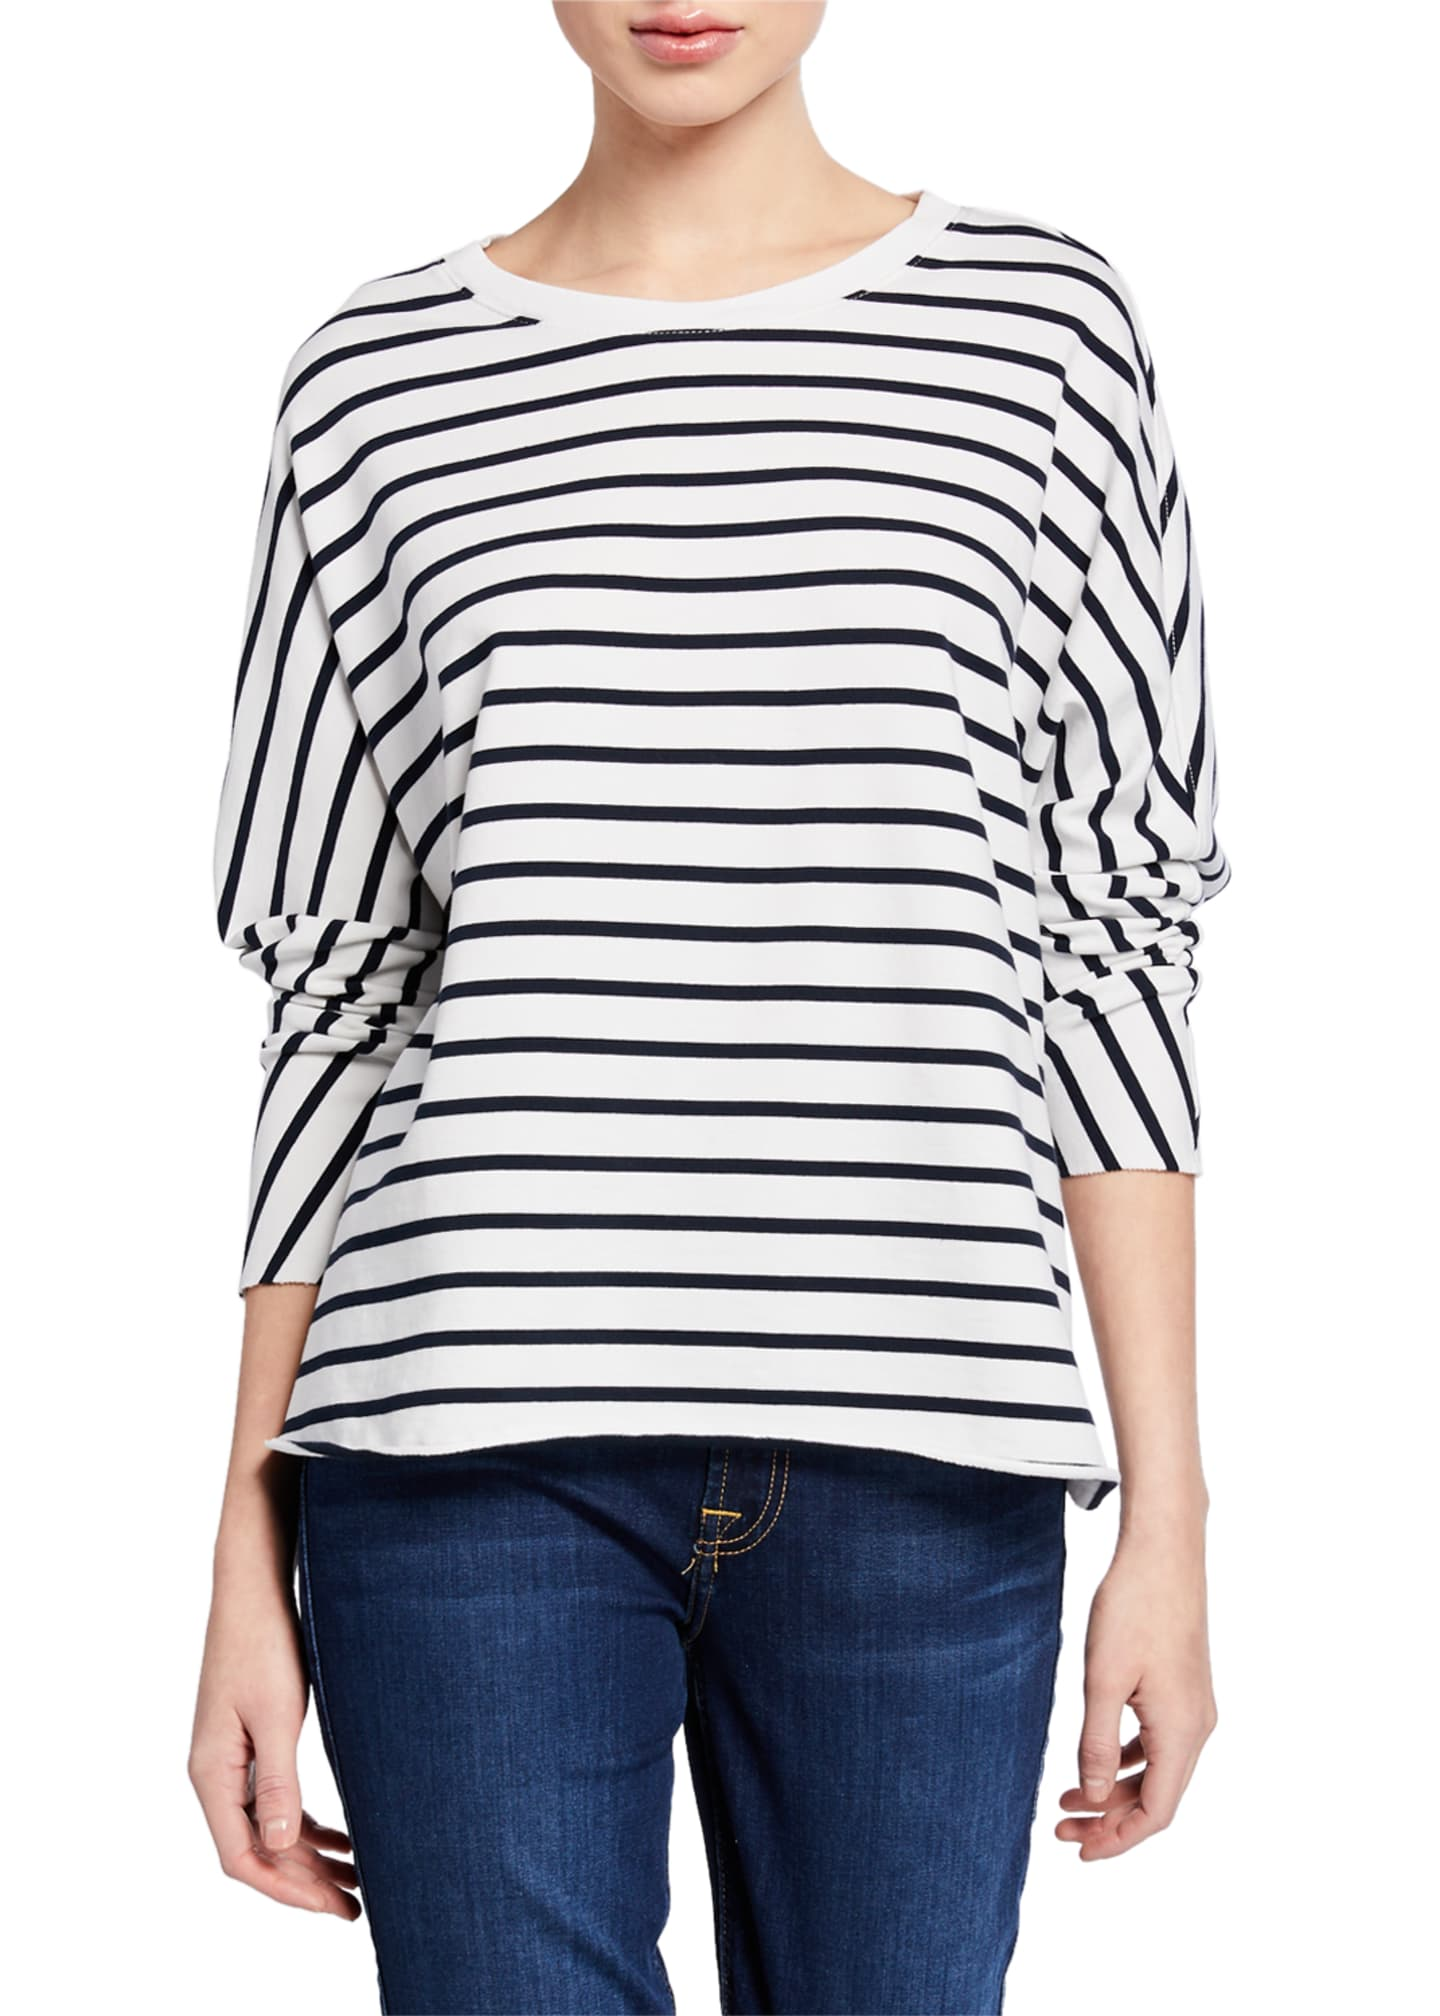 Frank & Eileen Tee Lab Striped Oversized Continuous-Sleeve